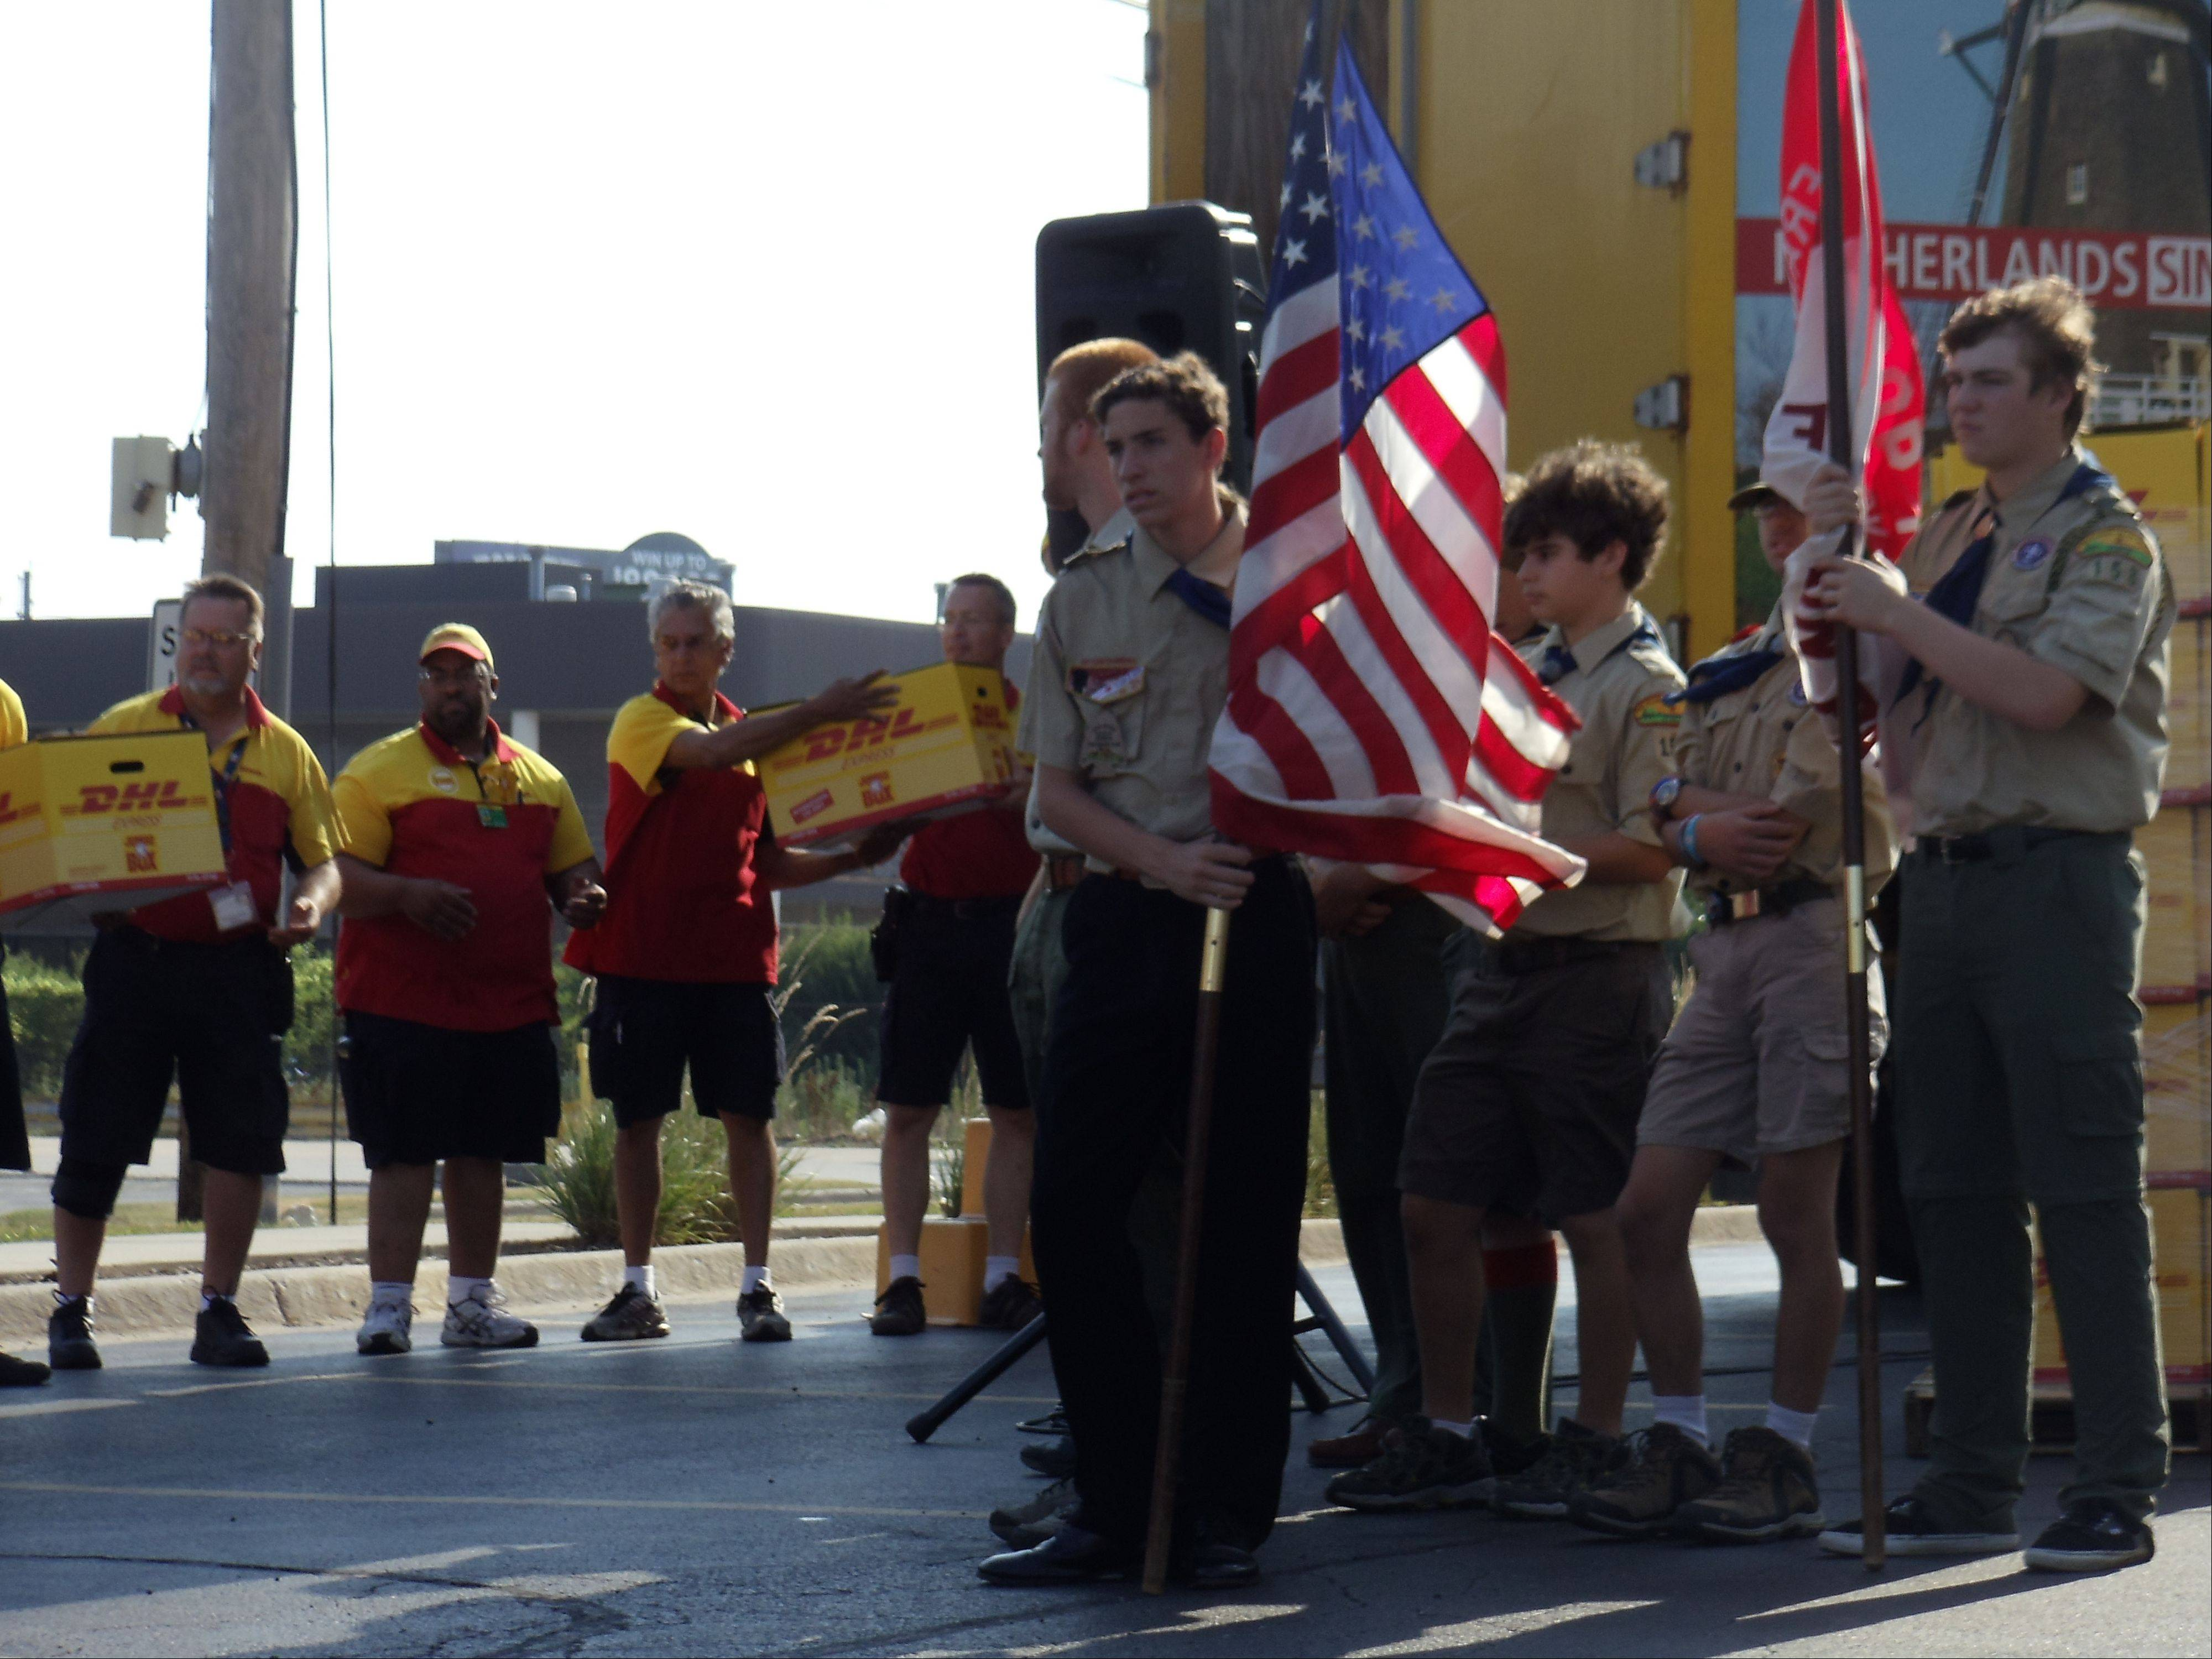 Members of Boy Scout Troop 158 in Franklin Park stand as DHL deliverymen load pizzas onto a semitrailer-truck as part of Pizza 4 Patriots' effort to send 30,000 pizzas to troops Afghanistan just in time for the Fourth of July. The organization was founded by Elk Grove Village resident Mark Evans.